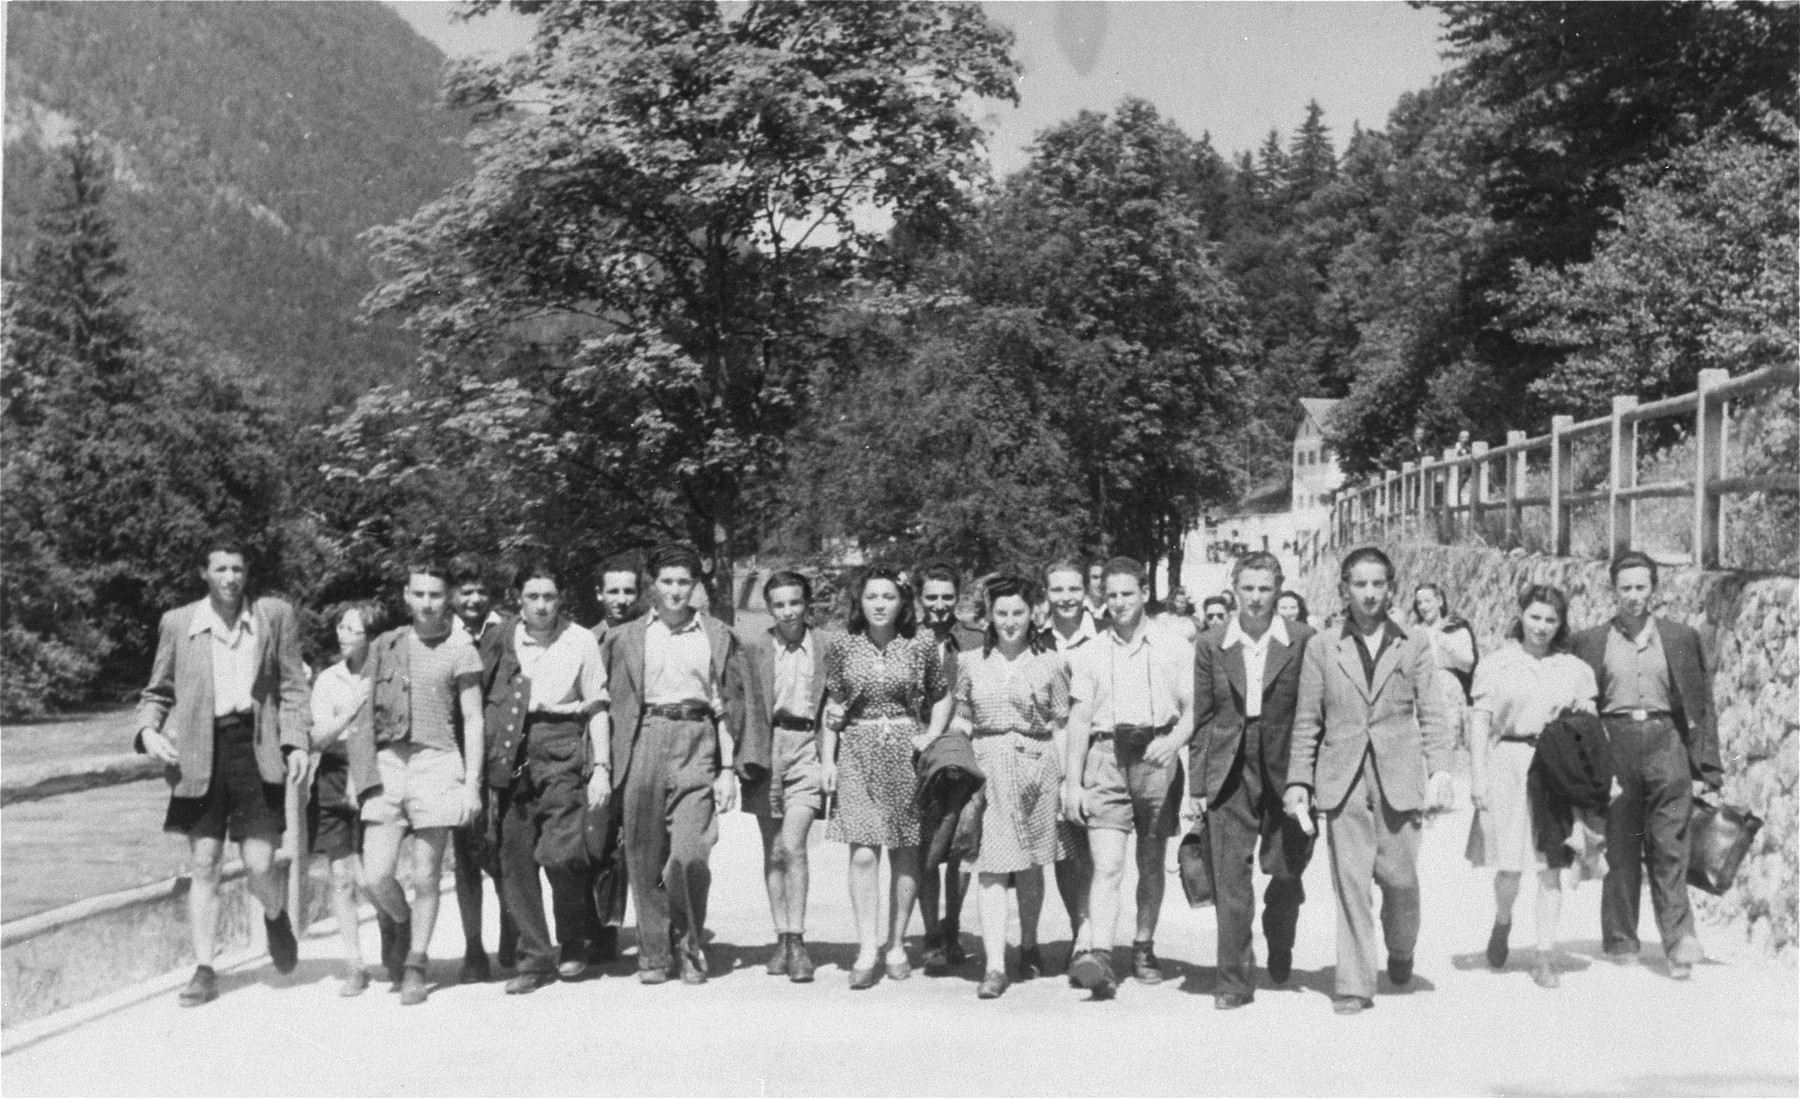 DP youth from the International Children's Center at Prien am Chiemsee on an outing.  Ely Ellbogen is on the far left.  Sam Mayer is also pictured.  David Yeger (from Rona De Sus, Romania. liberated from Flossenburg) is pictured in the front row, third from the left.